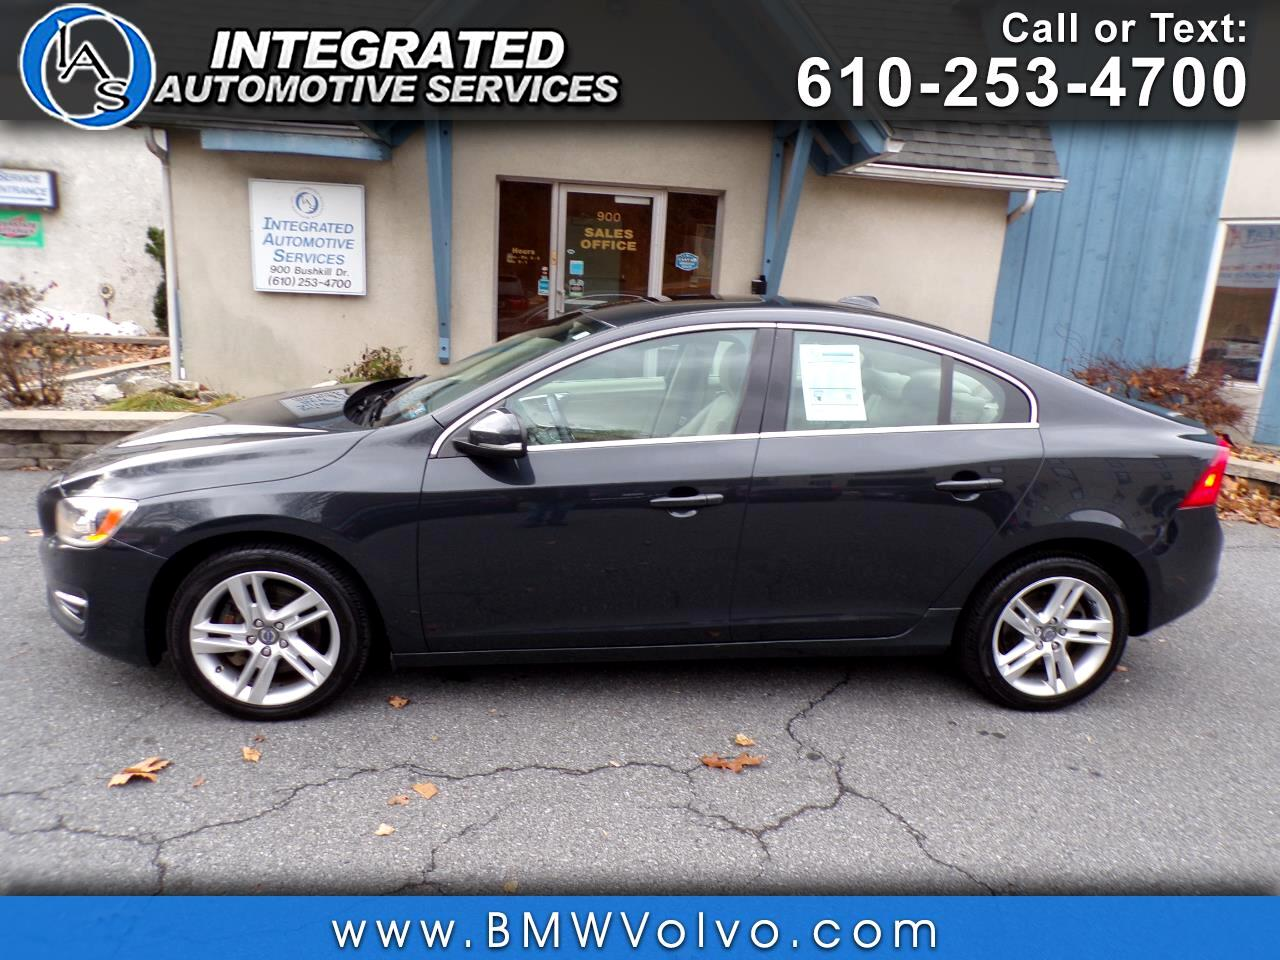 buy here pay here 2014 volvo s60 t5 for sale in easton pa 18042 integrated automotive services inc. Black Bedroom Furniture Sets. Home Design Ideas